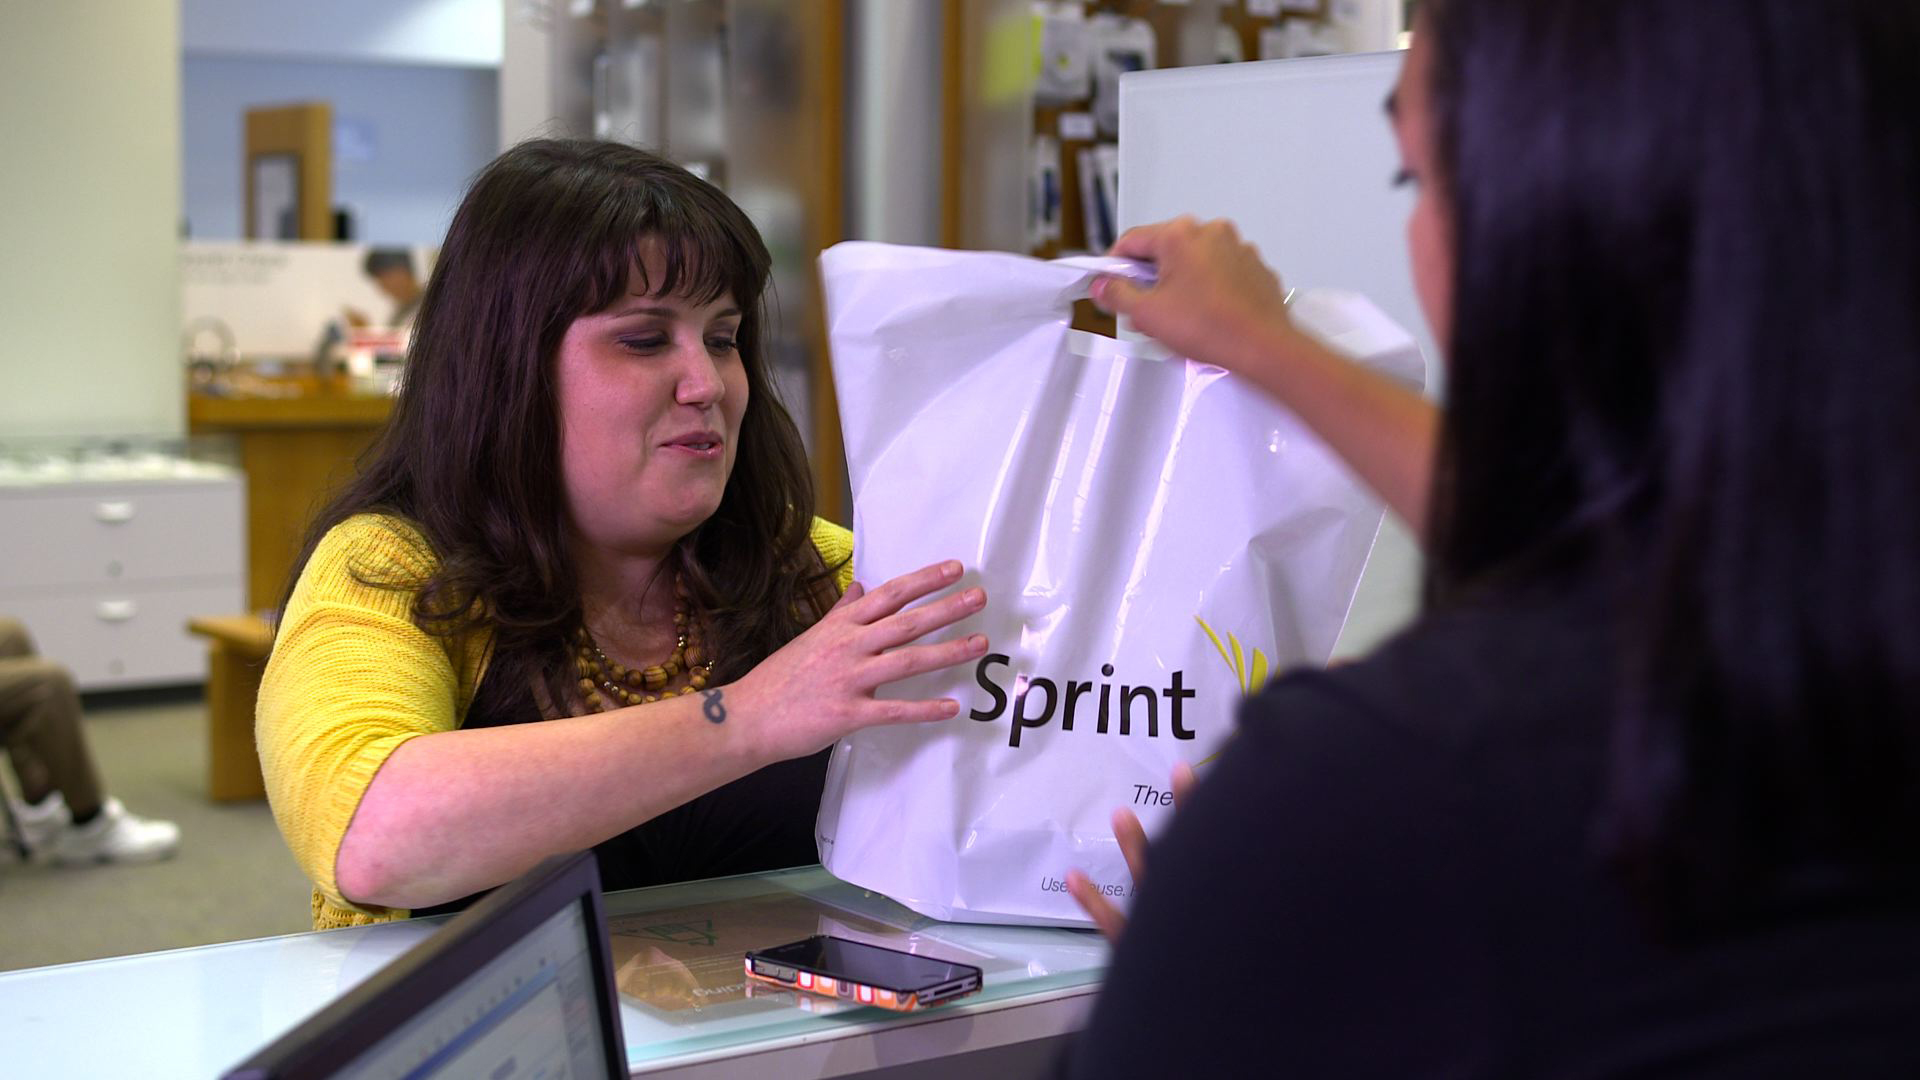 A Sprint customer takes advantage of the buyback program in a Sprint retail store in Chicago, IL. Last year alone, Sprint put more than $100 million back in customers' pockets through their trade-in program. (Photo: Business Wire)